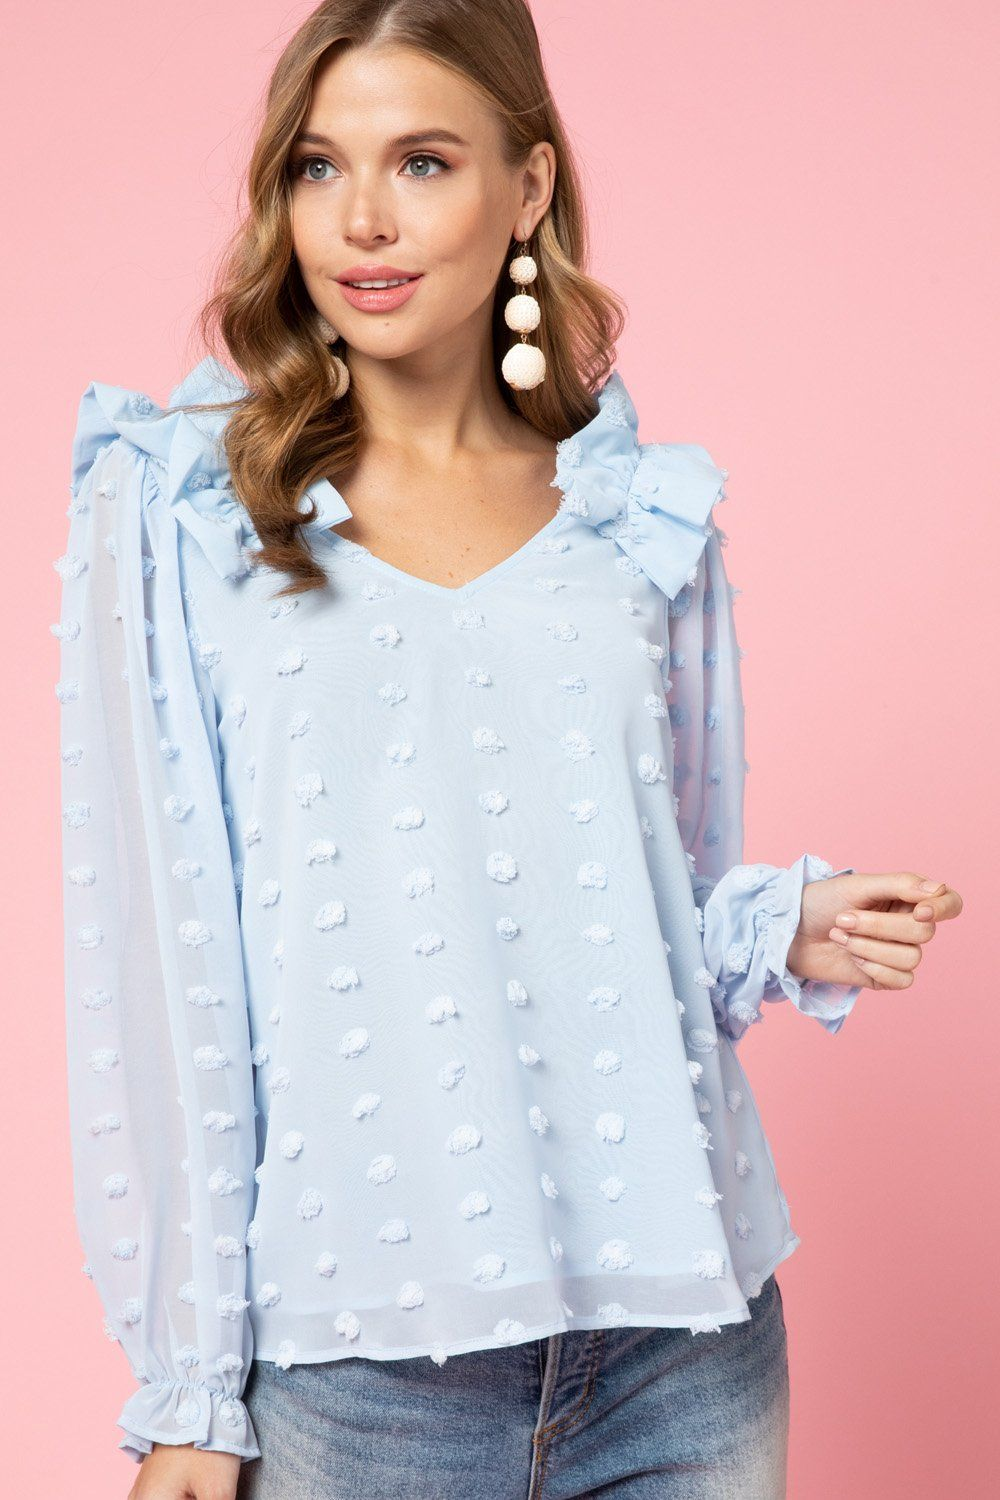 Blue Dotted Swiss Top pinkpoodle in 2020 Tops, Fashion